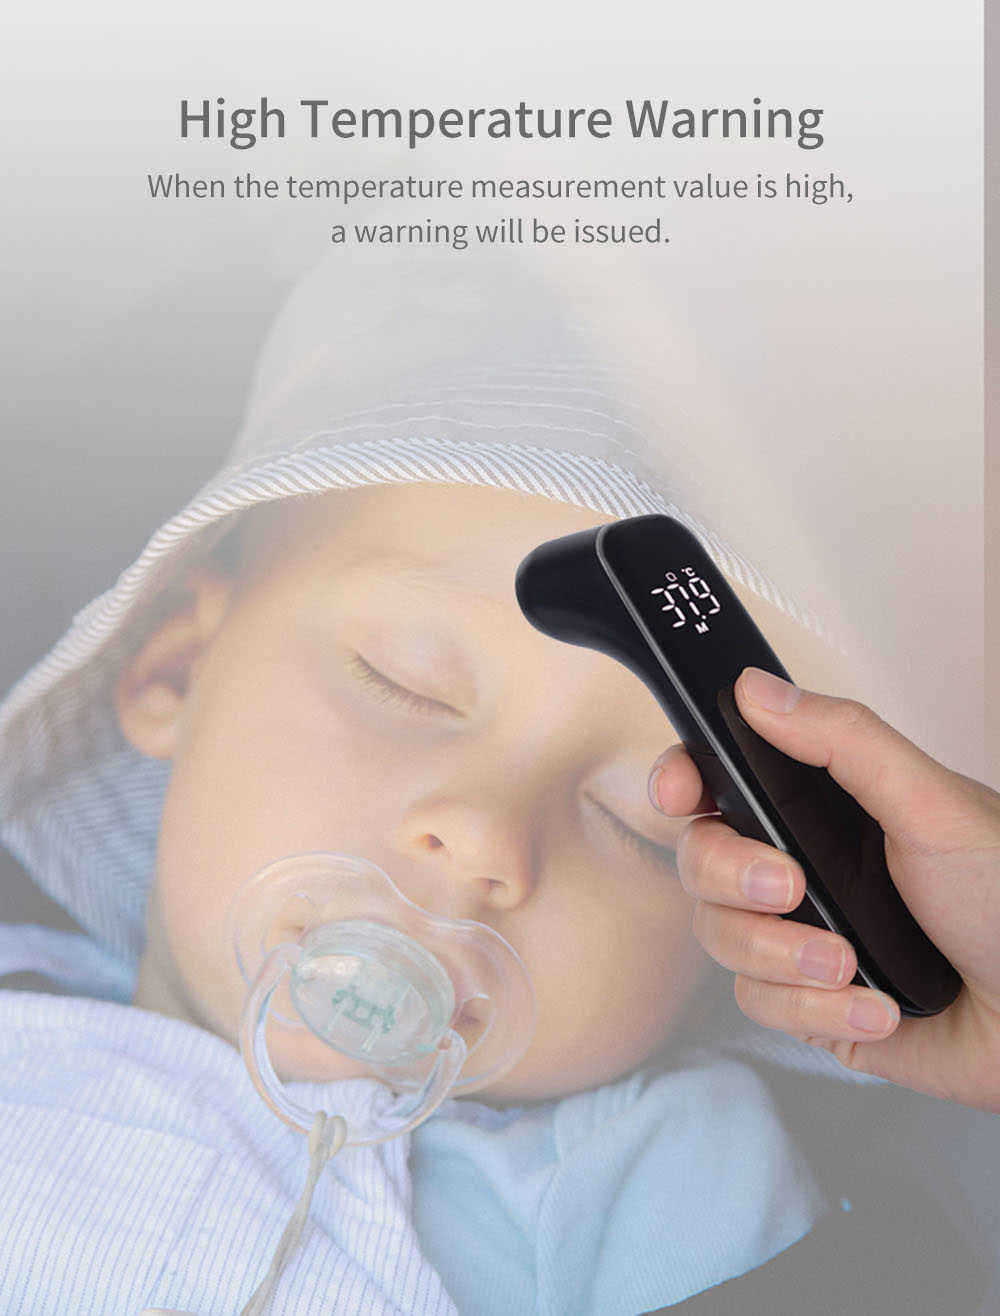 T09-LED-Full-Screen-Smart-Body-Thermometer-ordmF-1S-Instant-Measure-Infrared-Digital-Thermometer-Fro-1548850